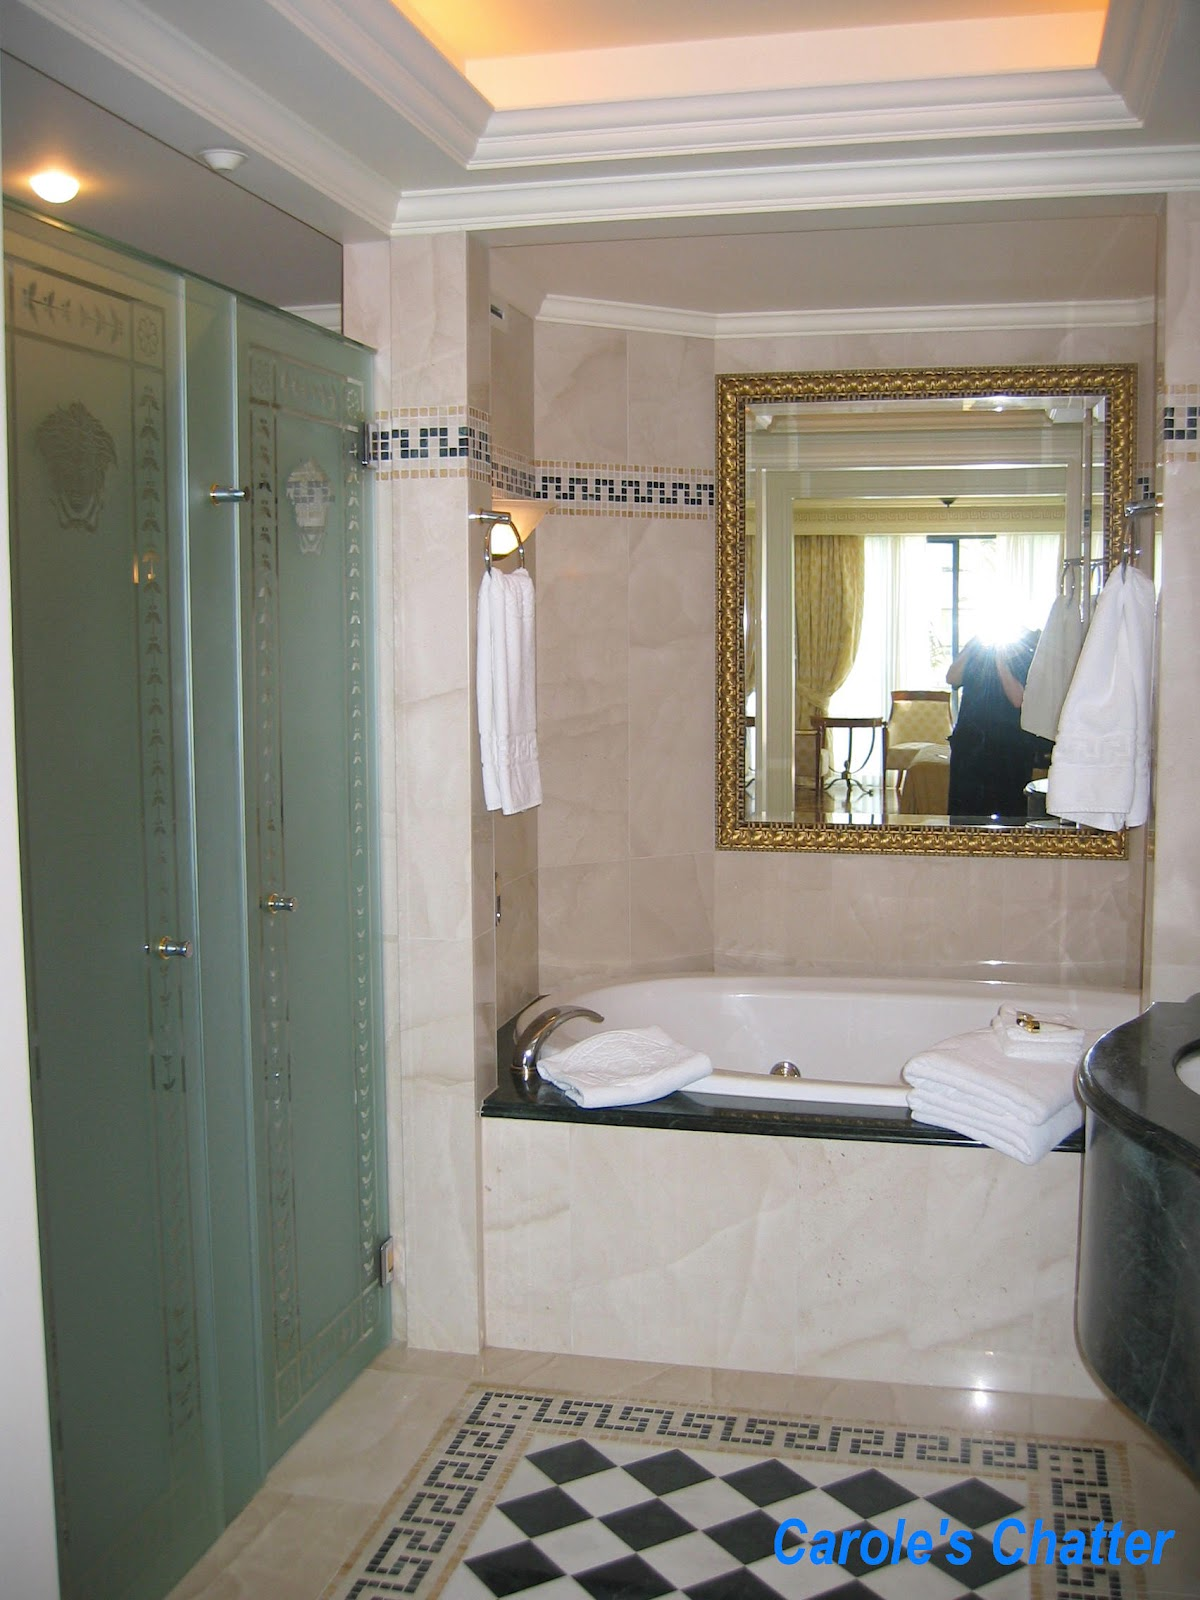 Carole 39 s chatter palazzo versace for Versace bathroom accessories